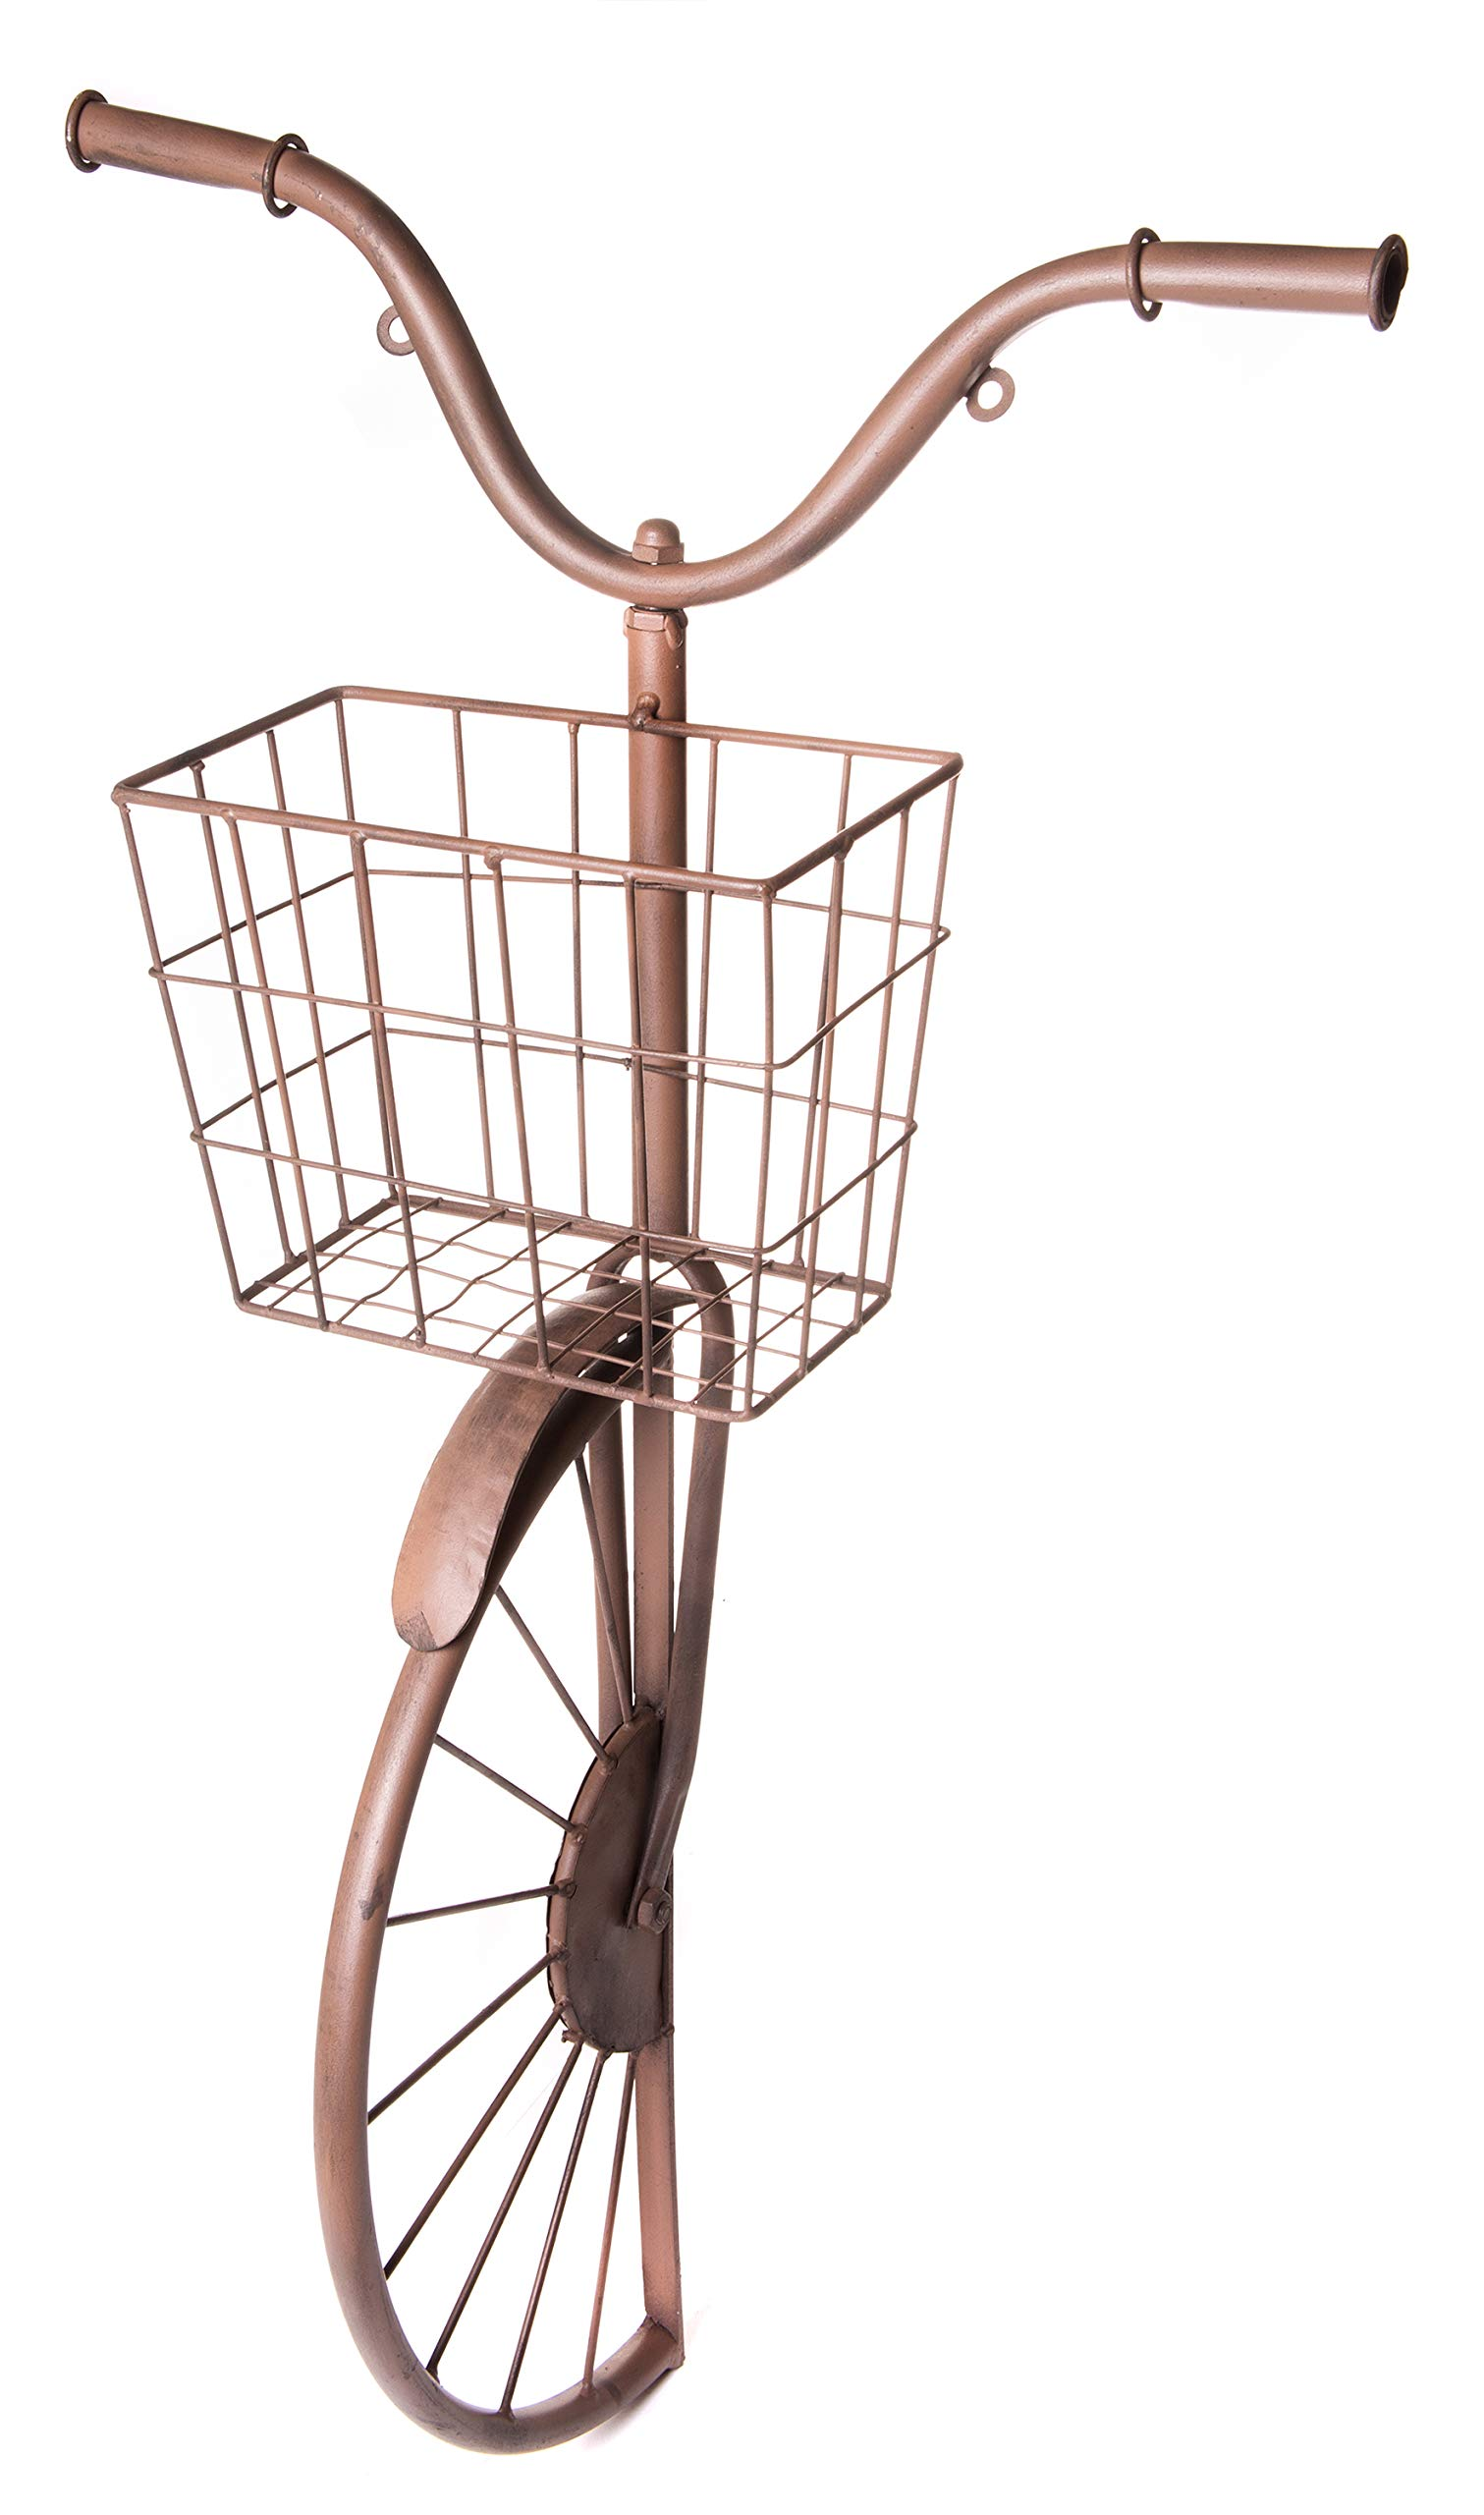 Metal Bicycle Sculpture with Basket, Country Rustic Decorative Wall Planter, Storage & Art Décor Centerpiece, 17'' x 30''